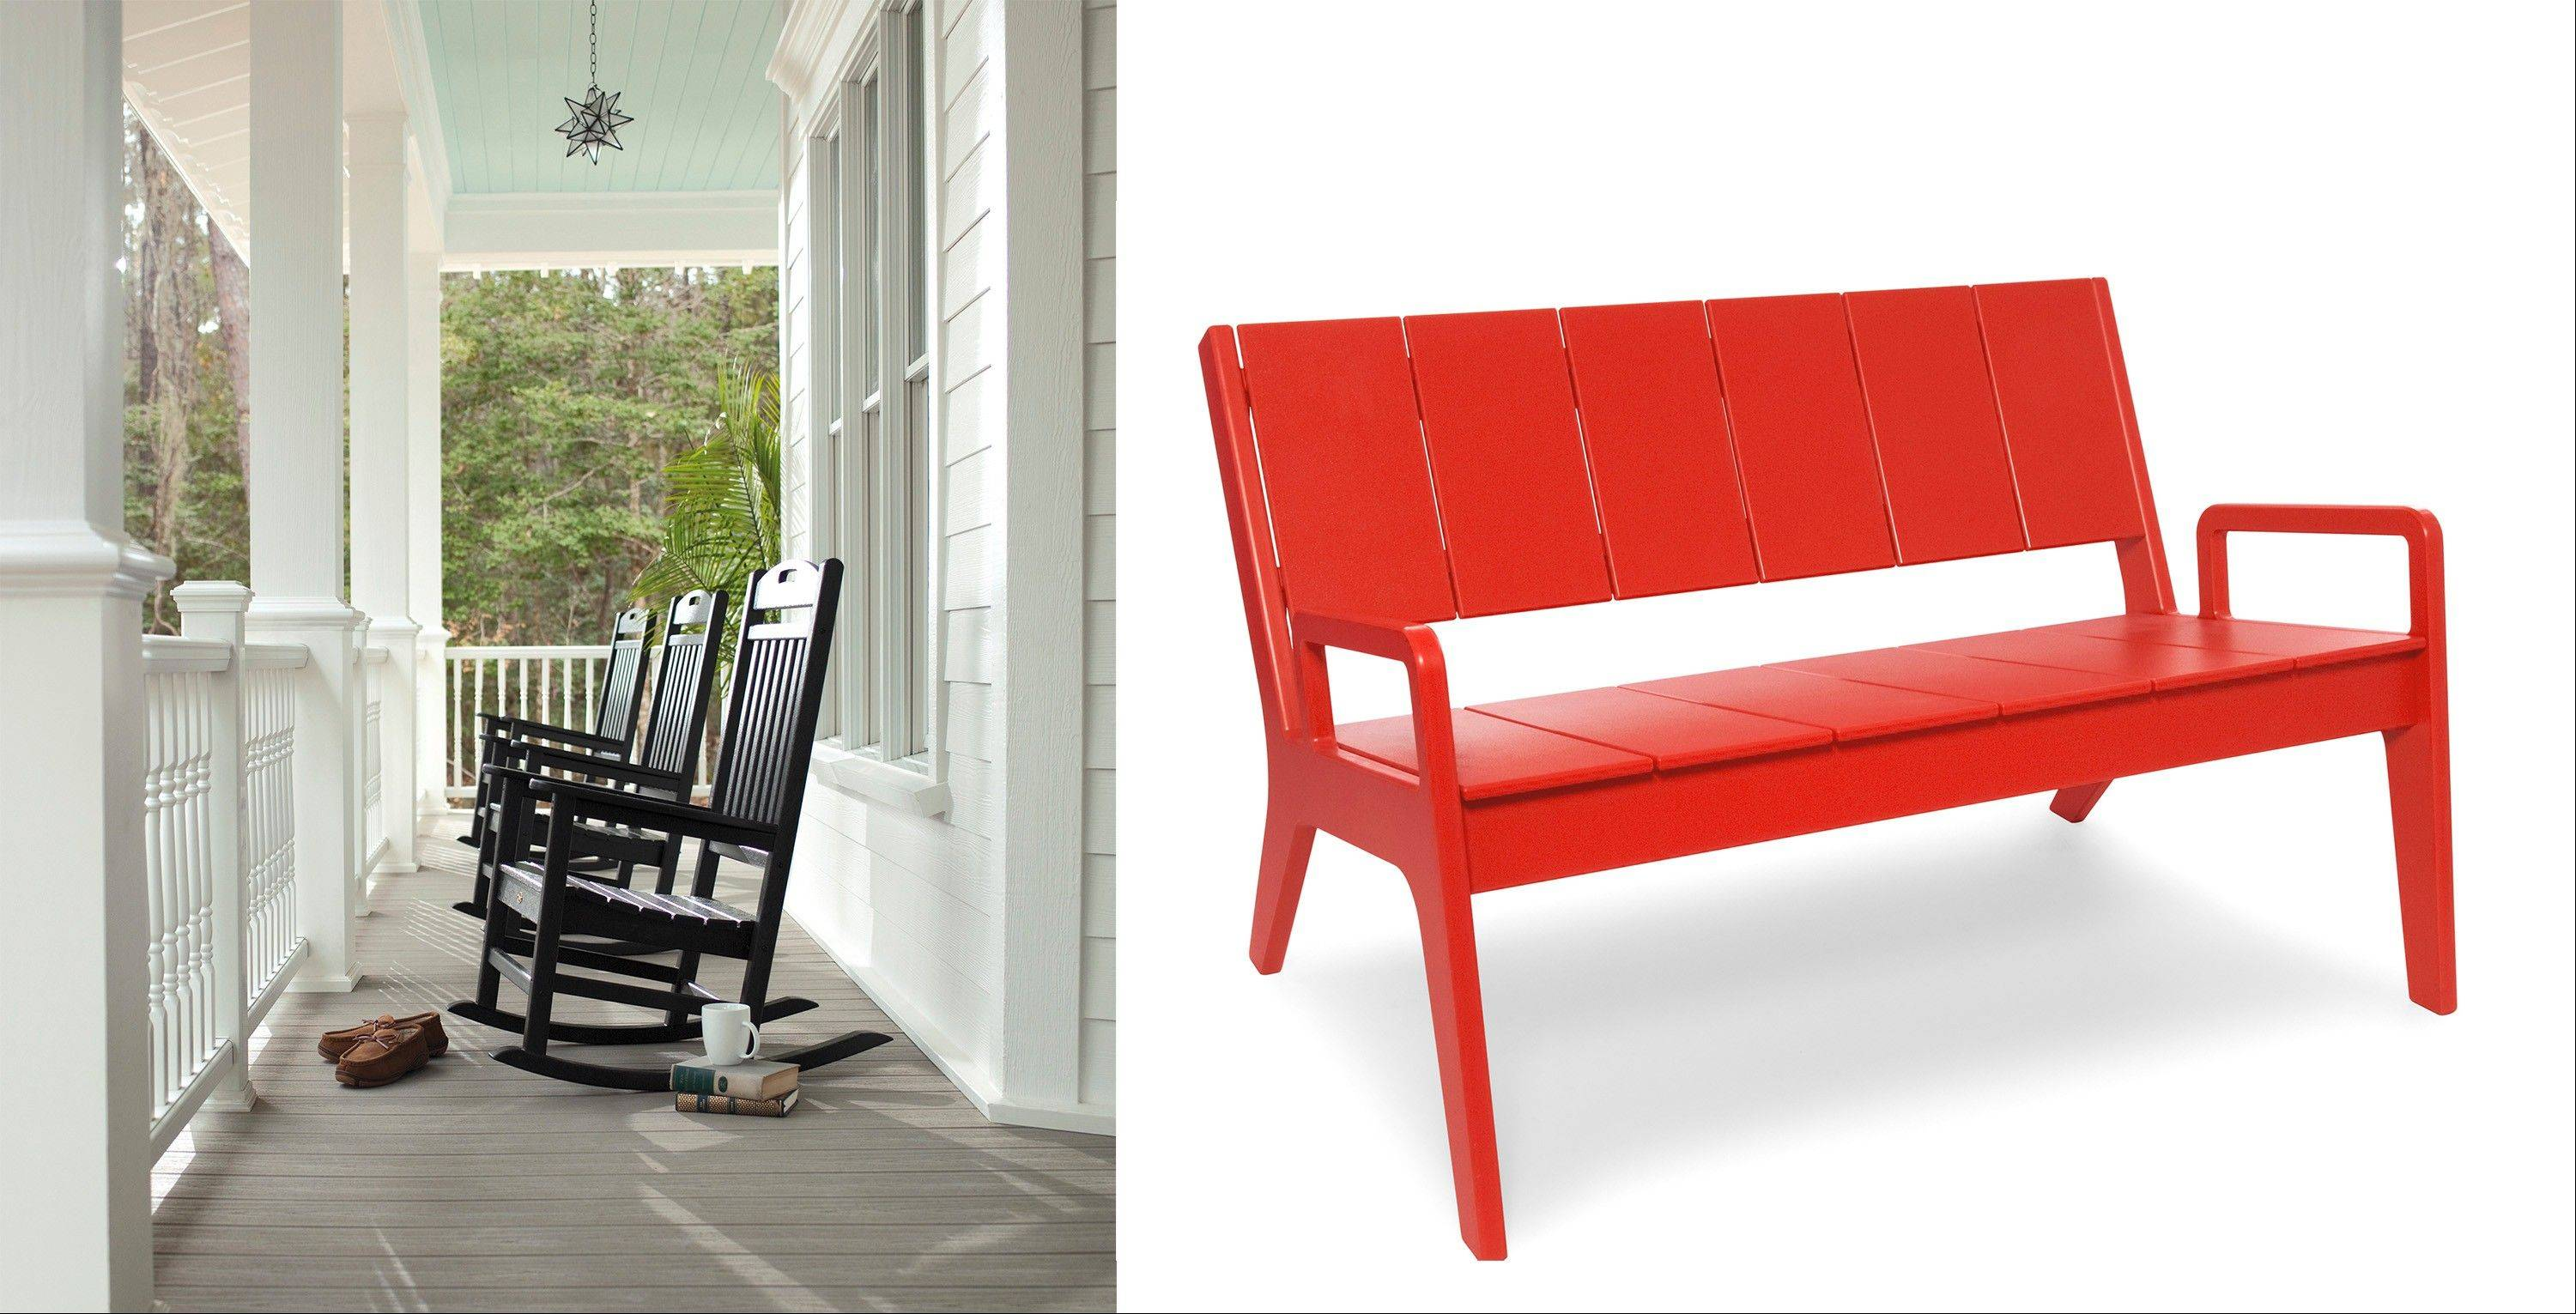 Trex Rocking Chairs #21 - Rocking Chairs Like These From Trex Outdoor Furniture, Left, Are Classic On  A Porch